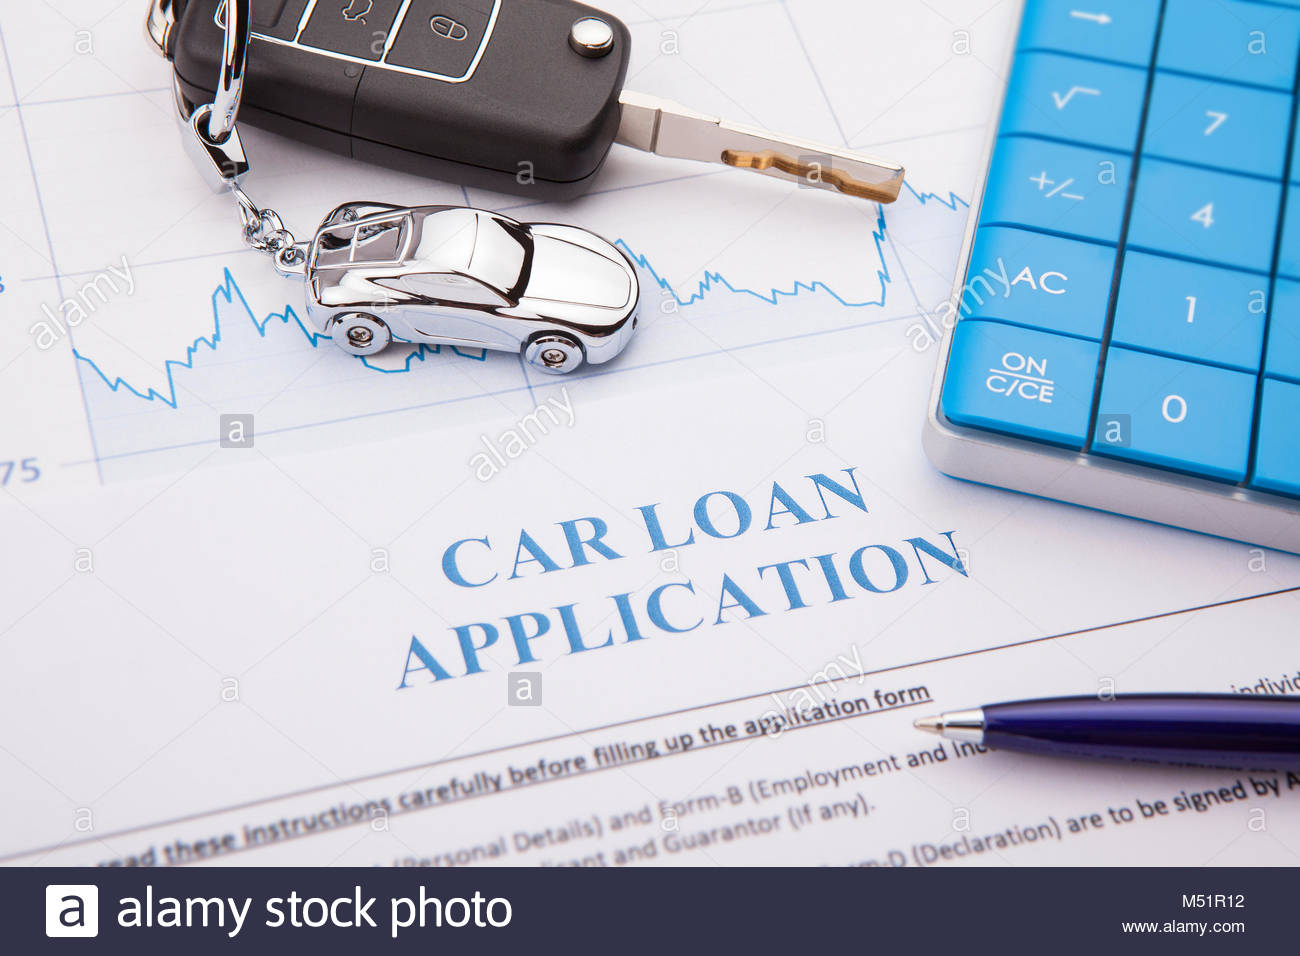 Approved Car Loan Application Form Lay Down On Desk